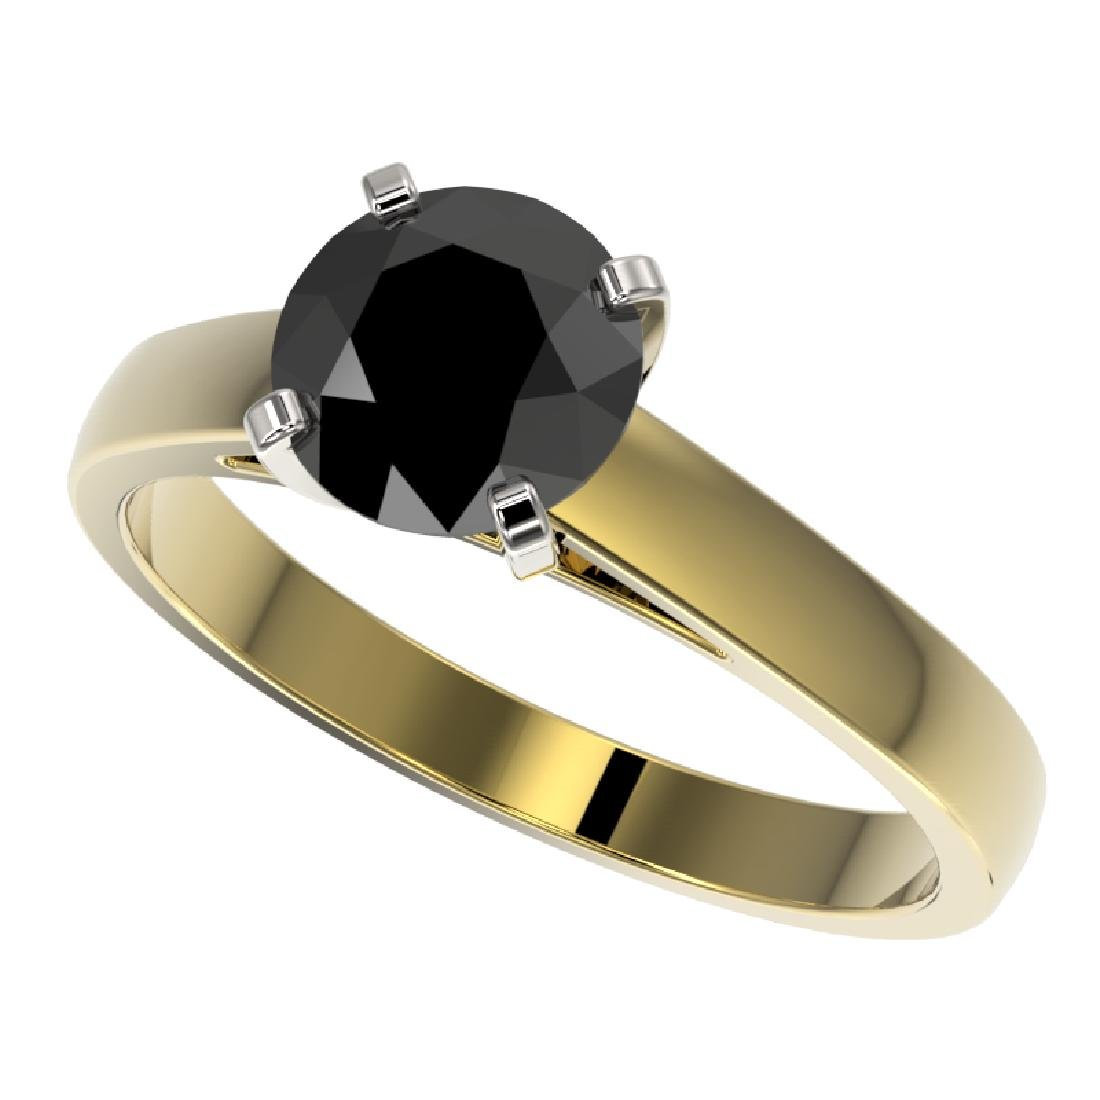 1.50 CTW Fancy Black VS Diamond Solitaire Engagement